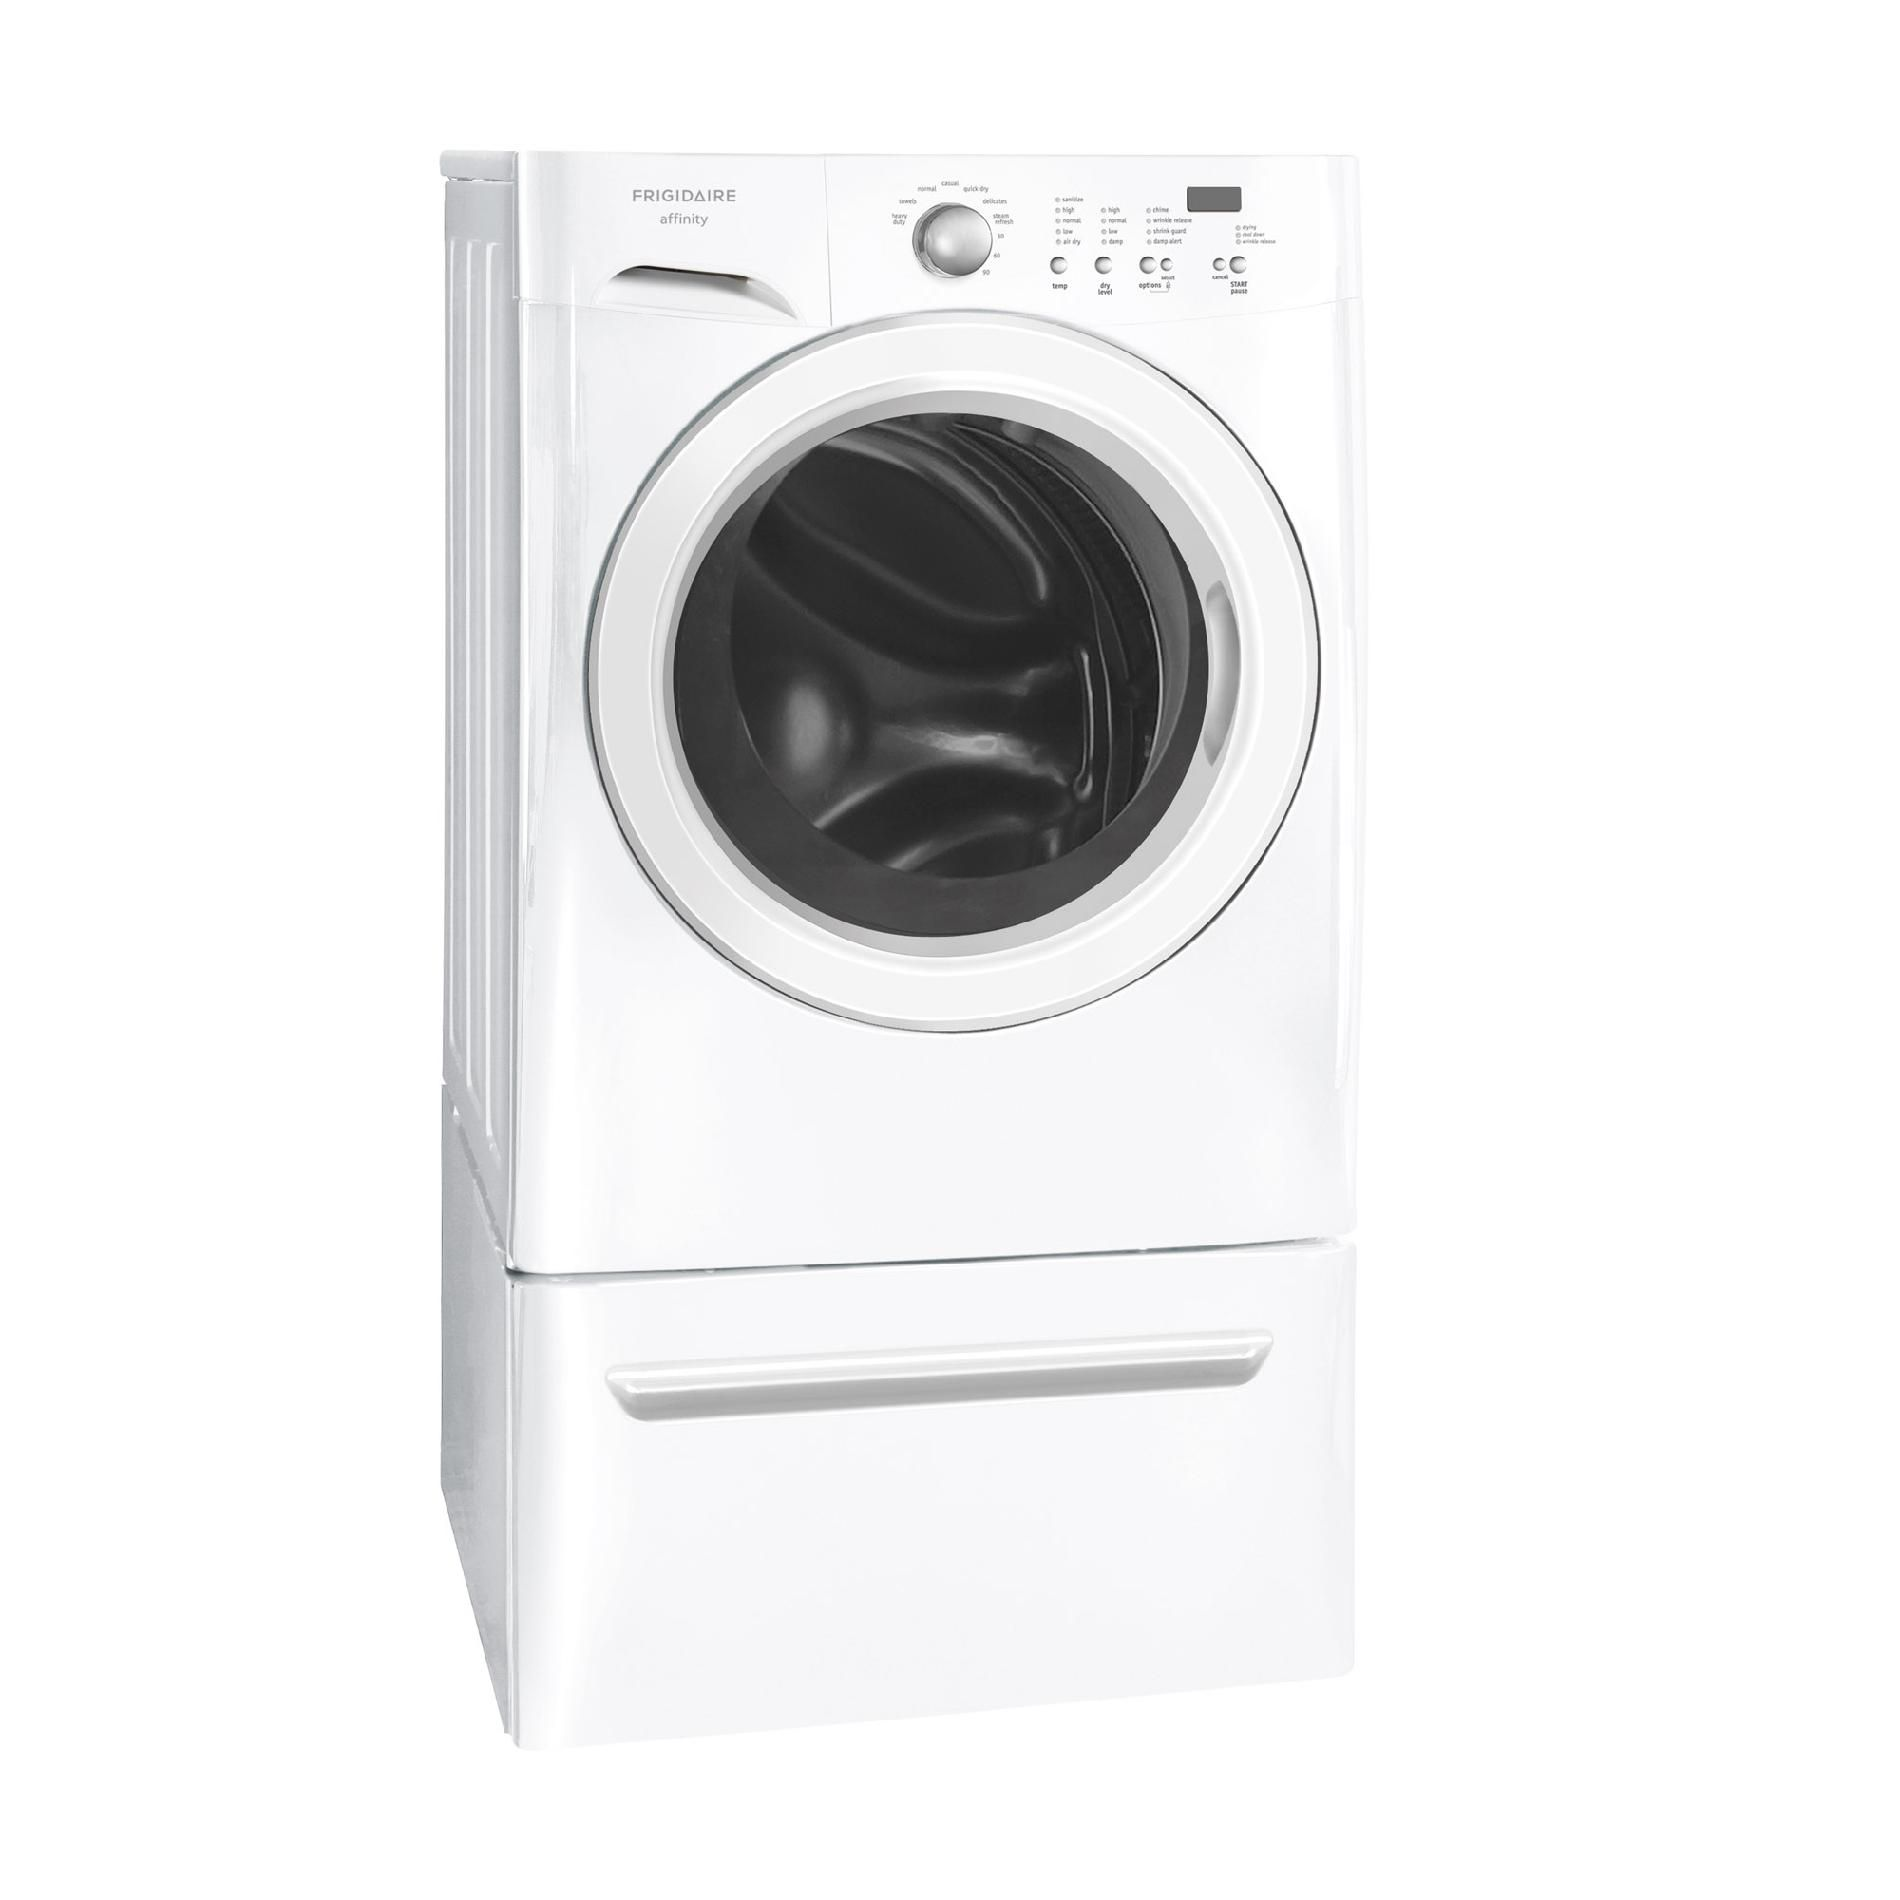 Frigidaire Affinity 7.0 cu. ft. Ready Steam™ Gas Dryer - White